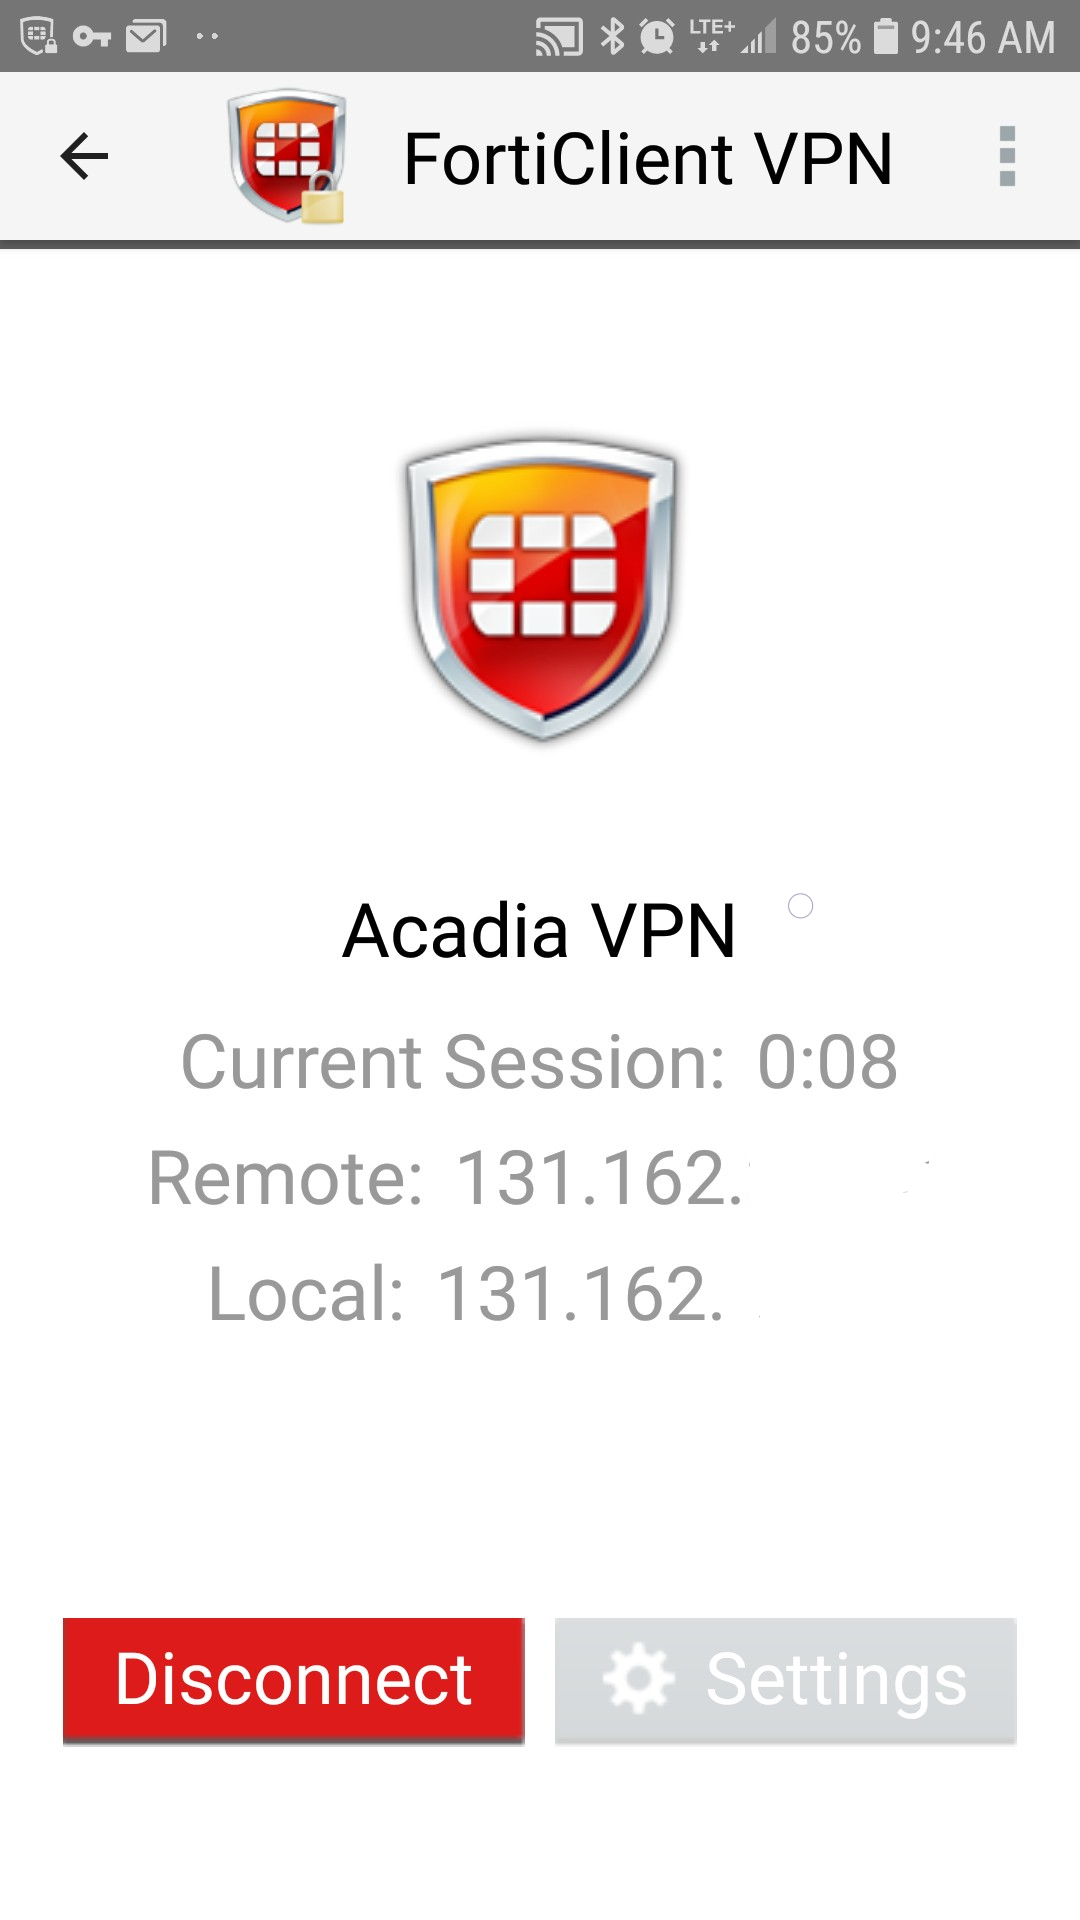 Article - How to set up a VPN on an A